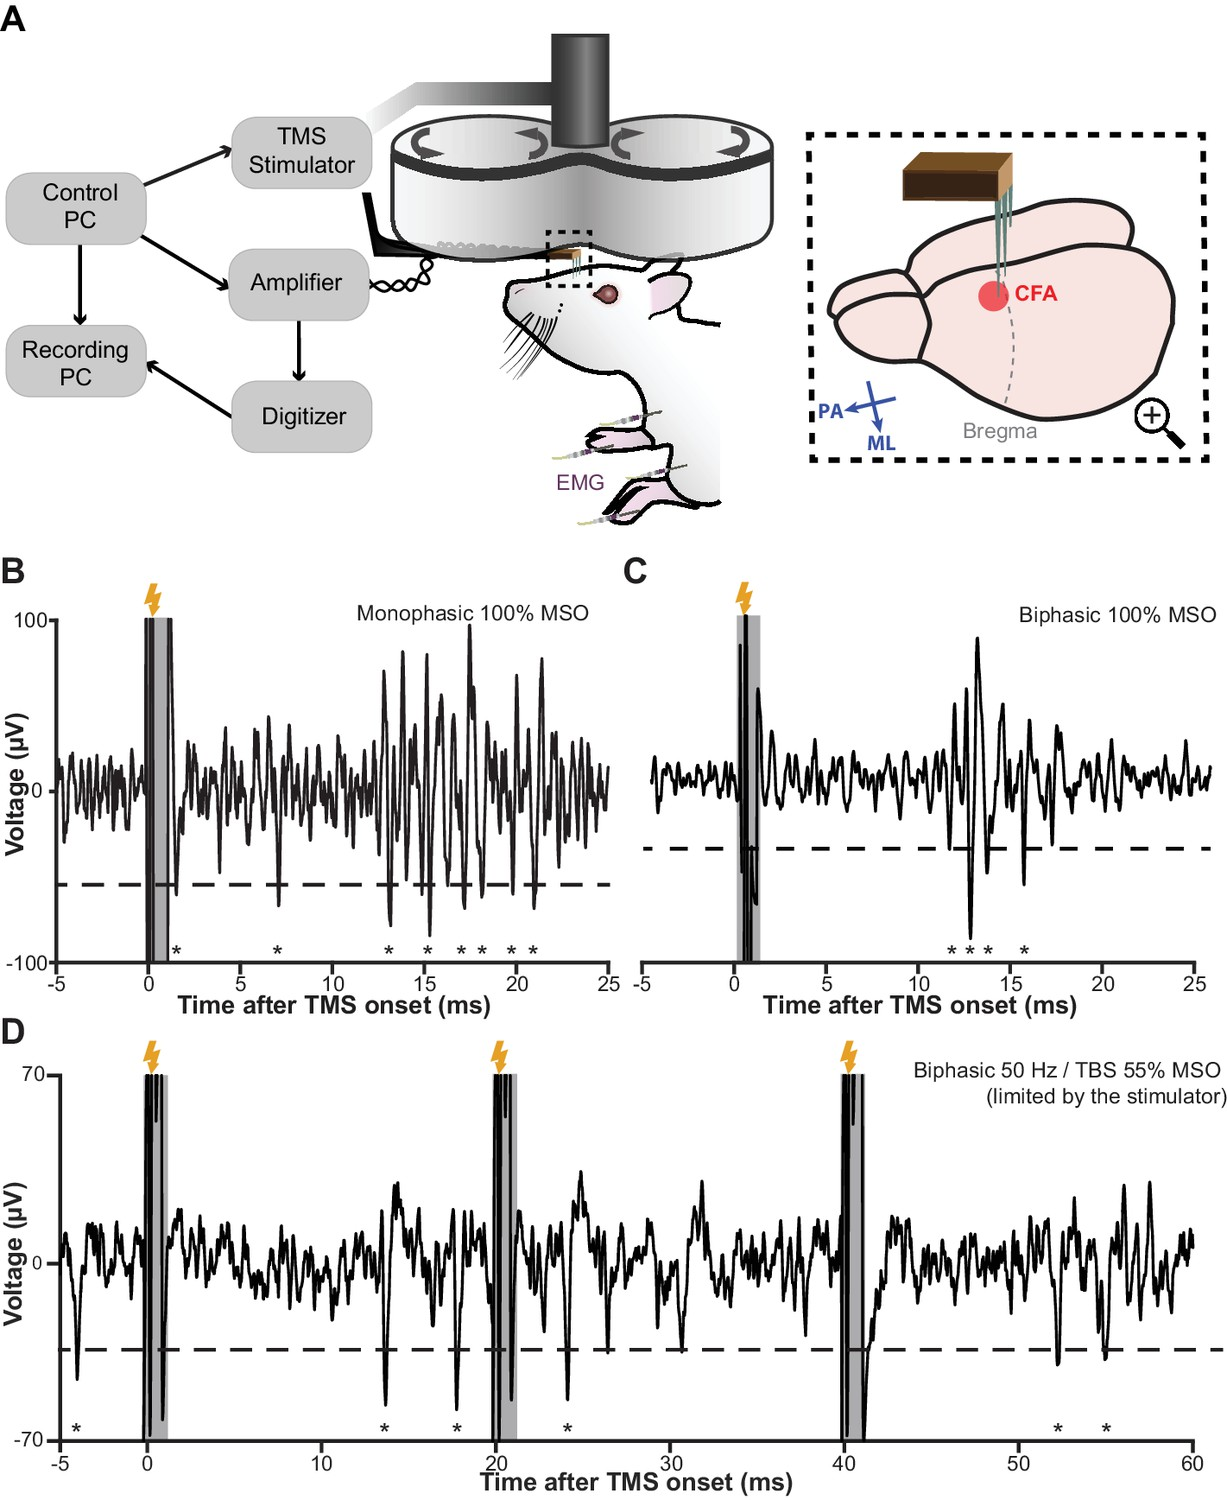 Lifting The Veil On Dynamics Of Neuronal Activities Evoked By This Circuit Will Remove Transient Spikes And Contact Bounces From Tms Eep Recording Setup Rapid Signal Recovery Under Worst Case Stimuli